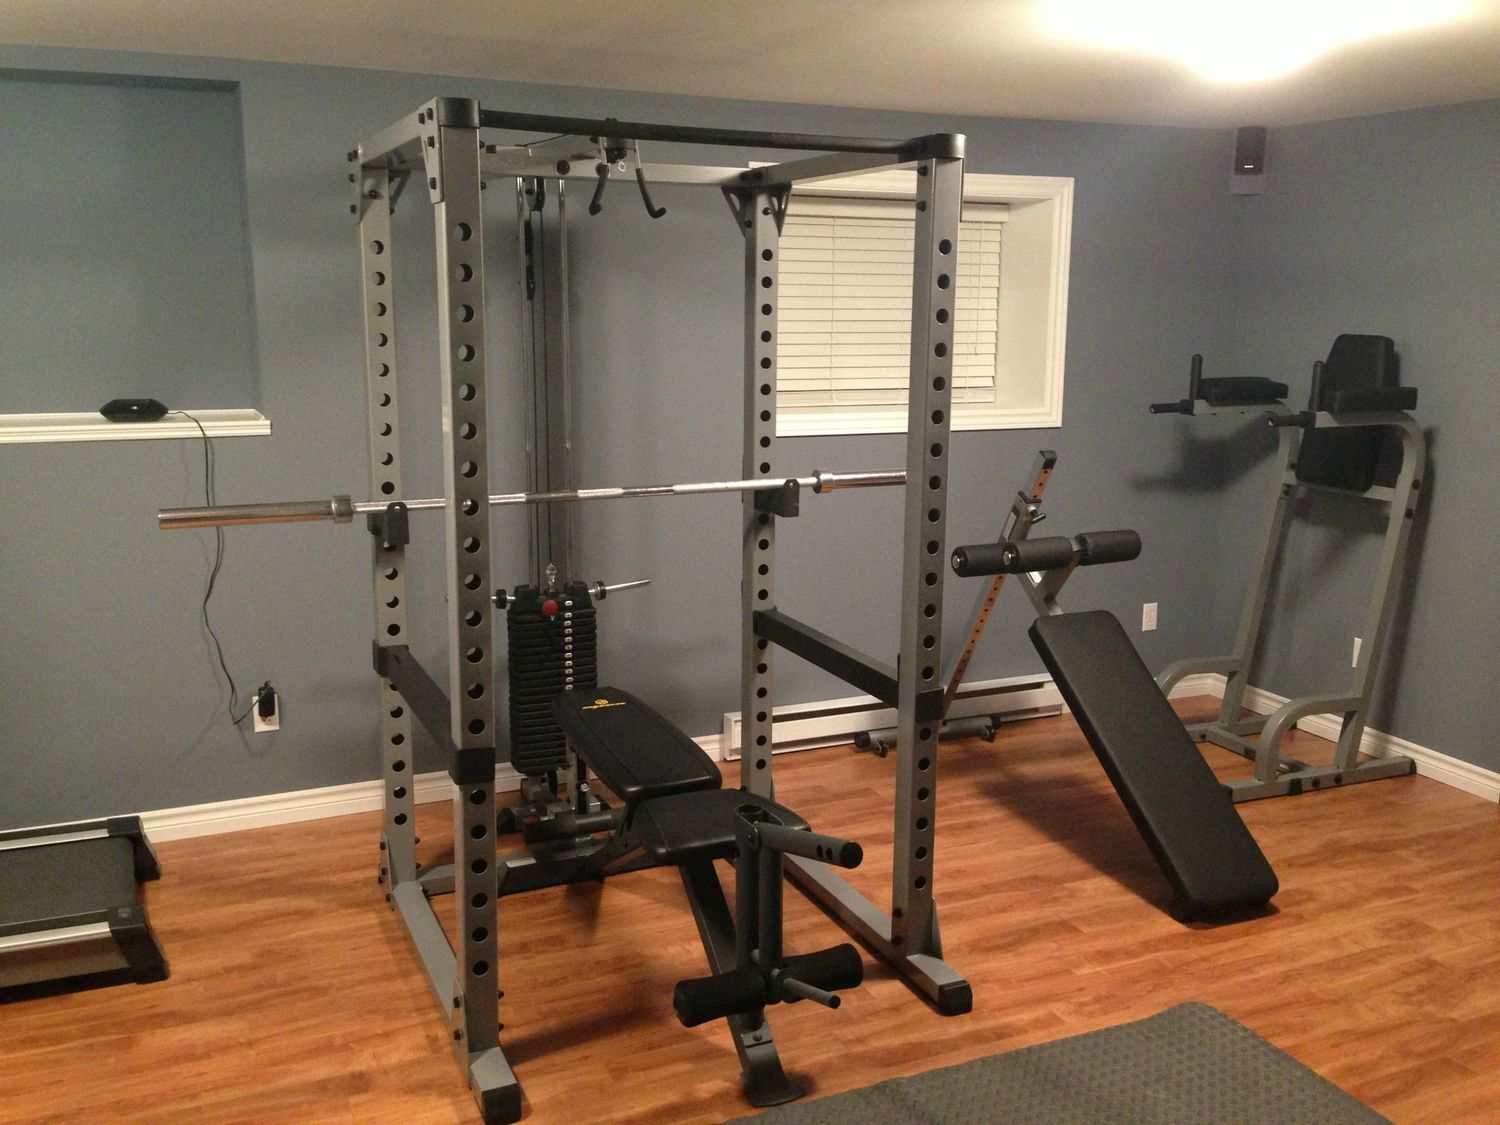 Inexpensive power rack lovequilts